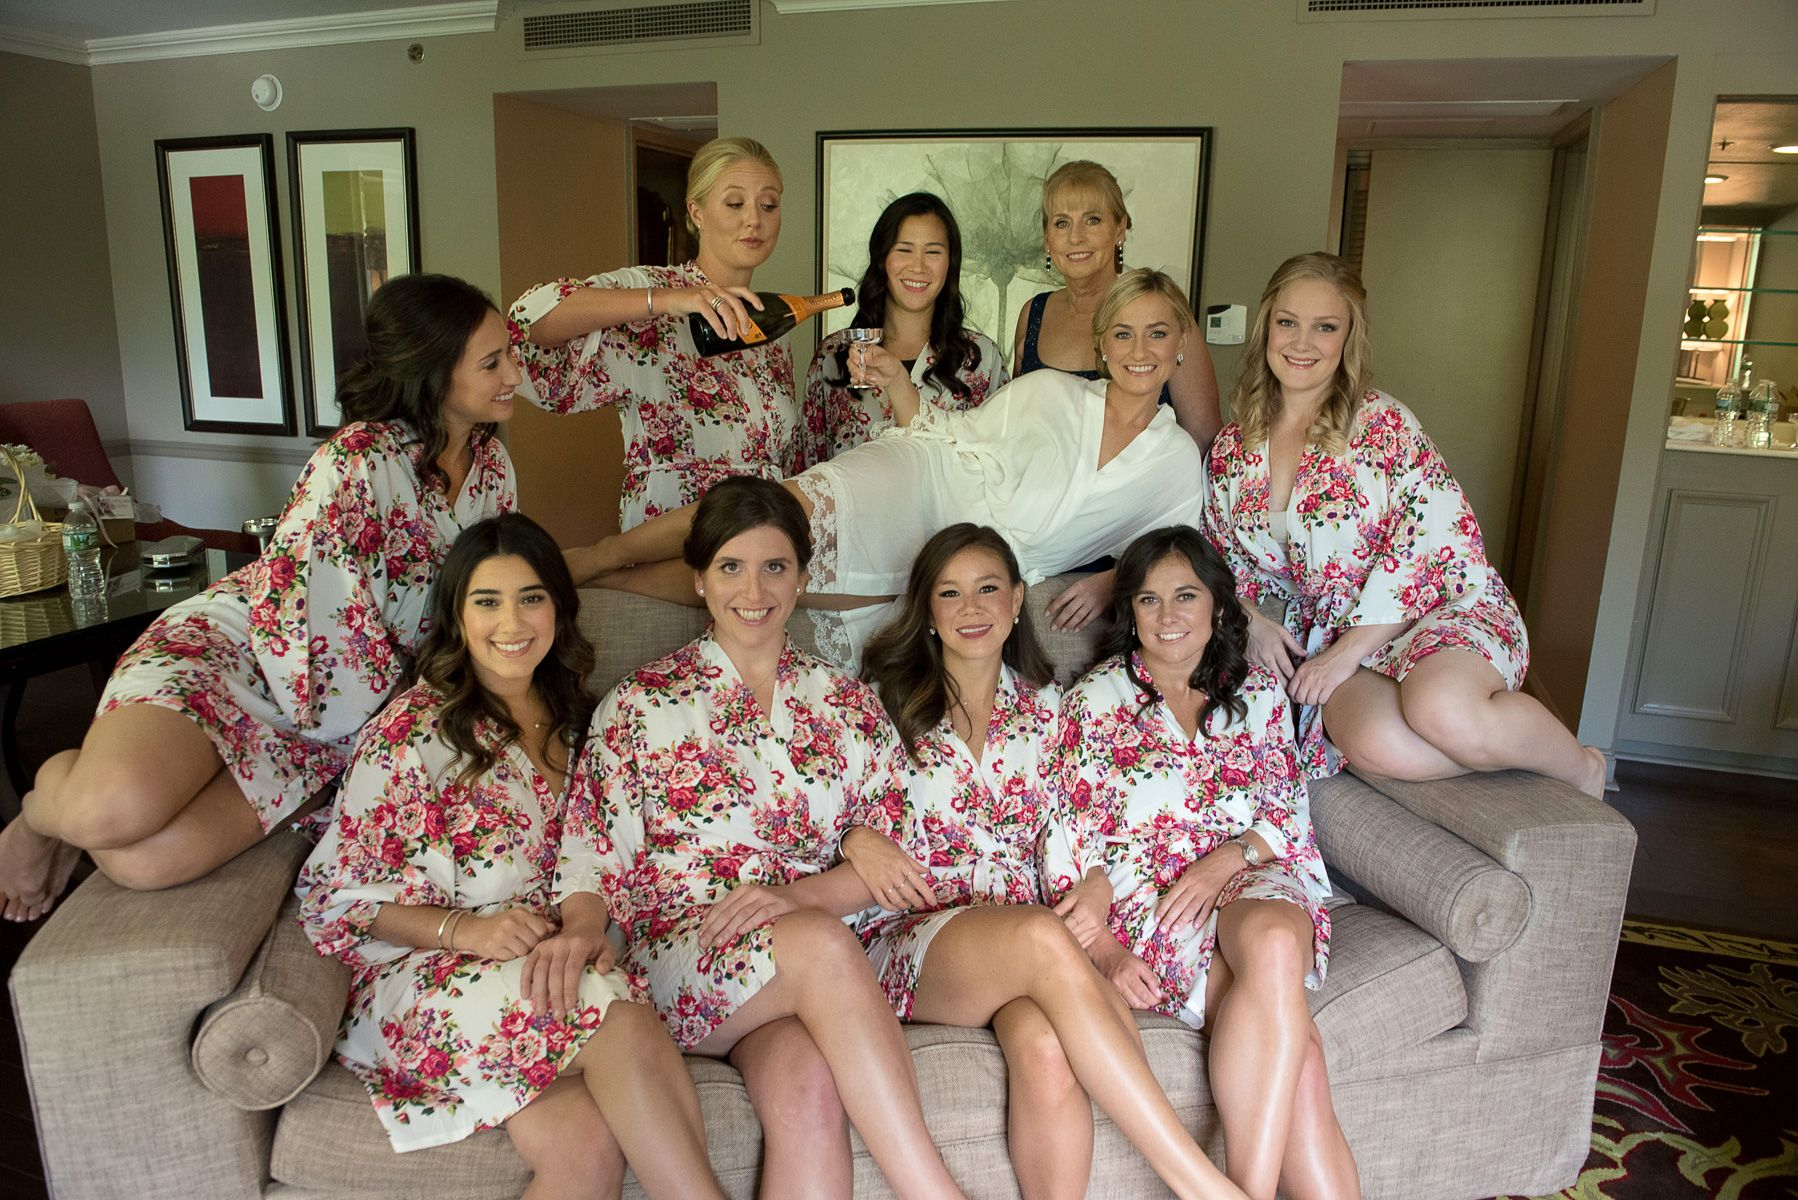 Bridesmaids, Champagne, The Bride